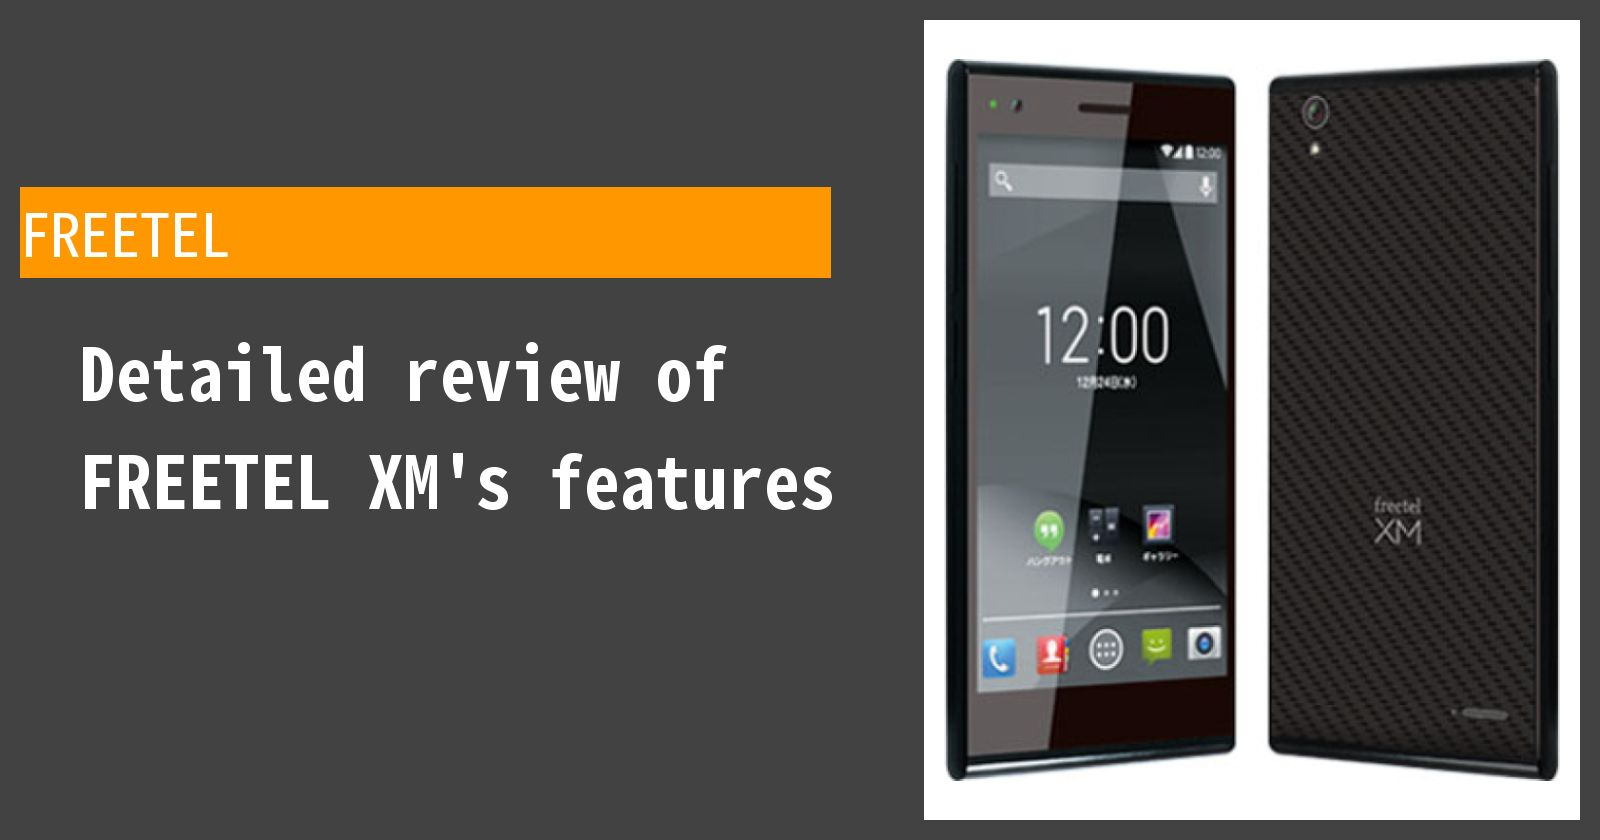 Detailed review of freetel LTE XM's features